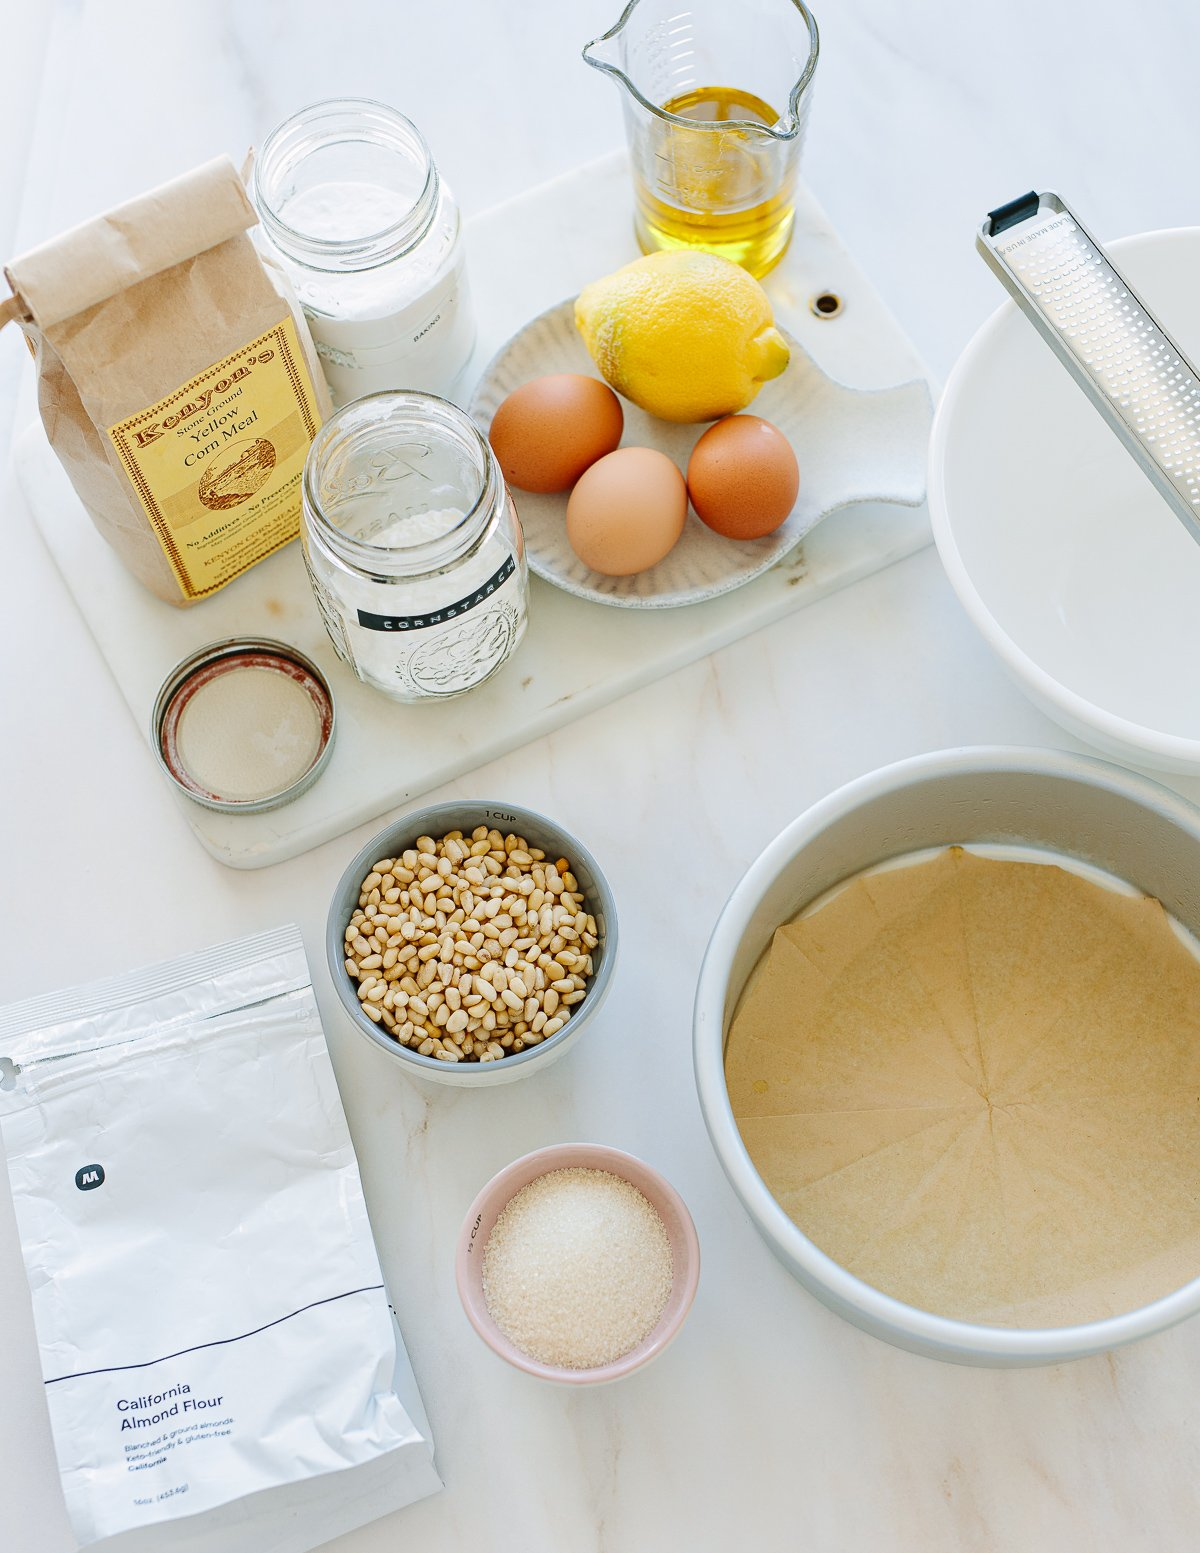 Ingredients for making a one-bowl lemon cake on a counter, including eggs, lemon, pine nuts, almond flour, cornmeal, sugar and olive oil.